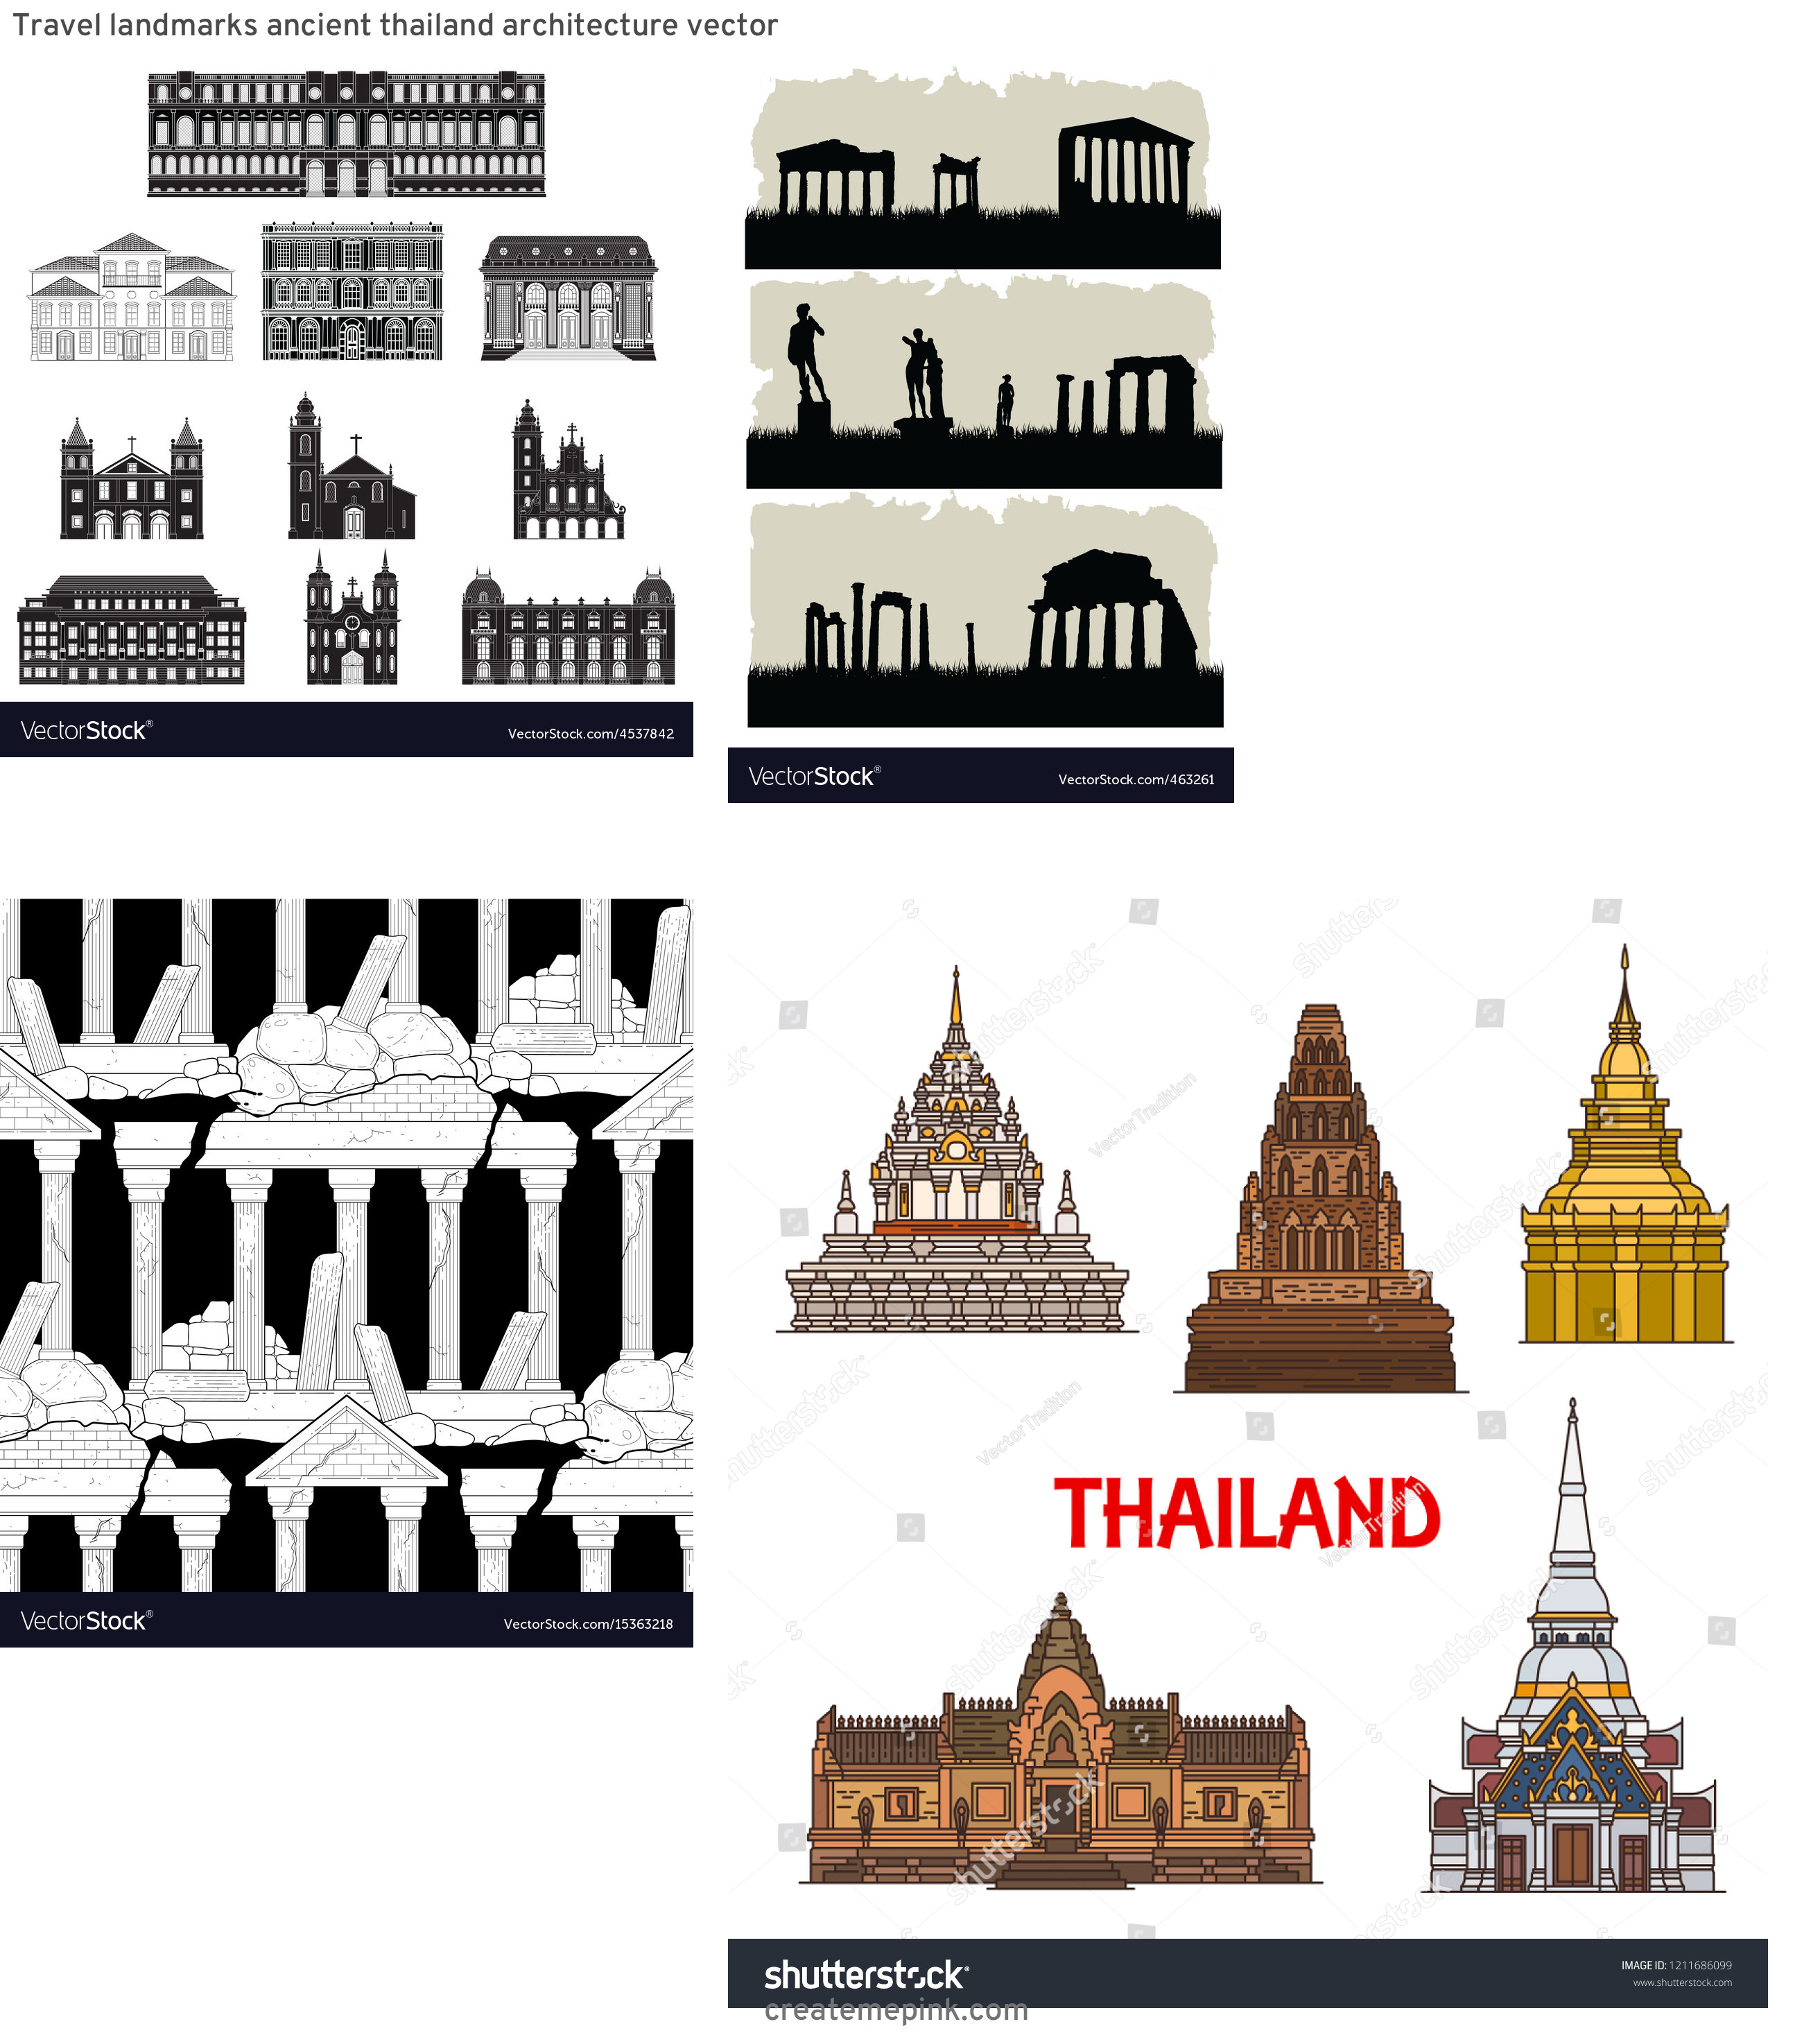 Ancient Architecture Vector: Travel Landmarks Ancient Thailand Architecture Vector